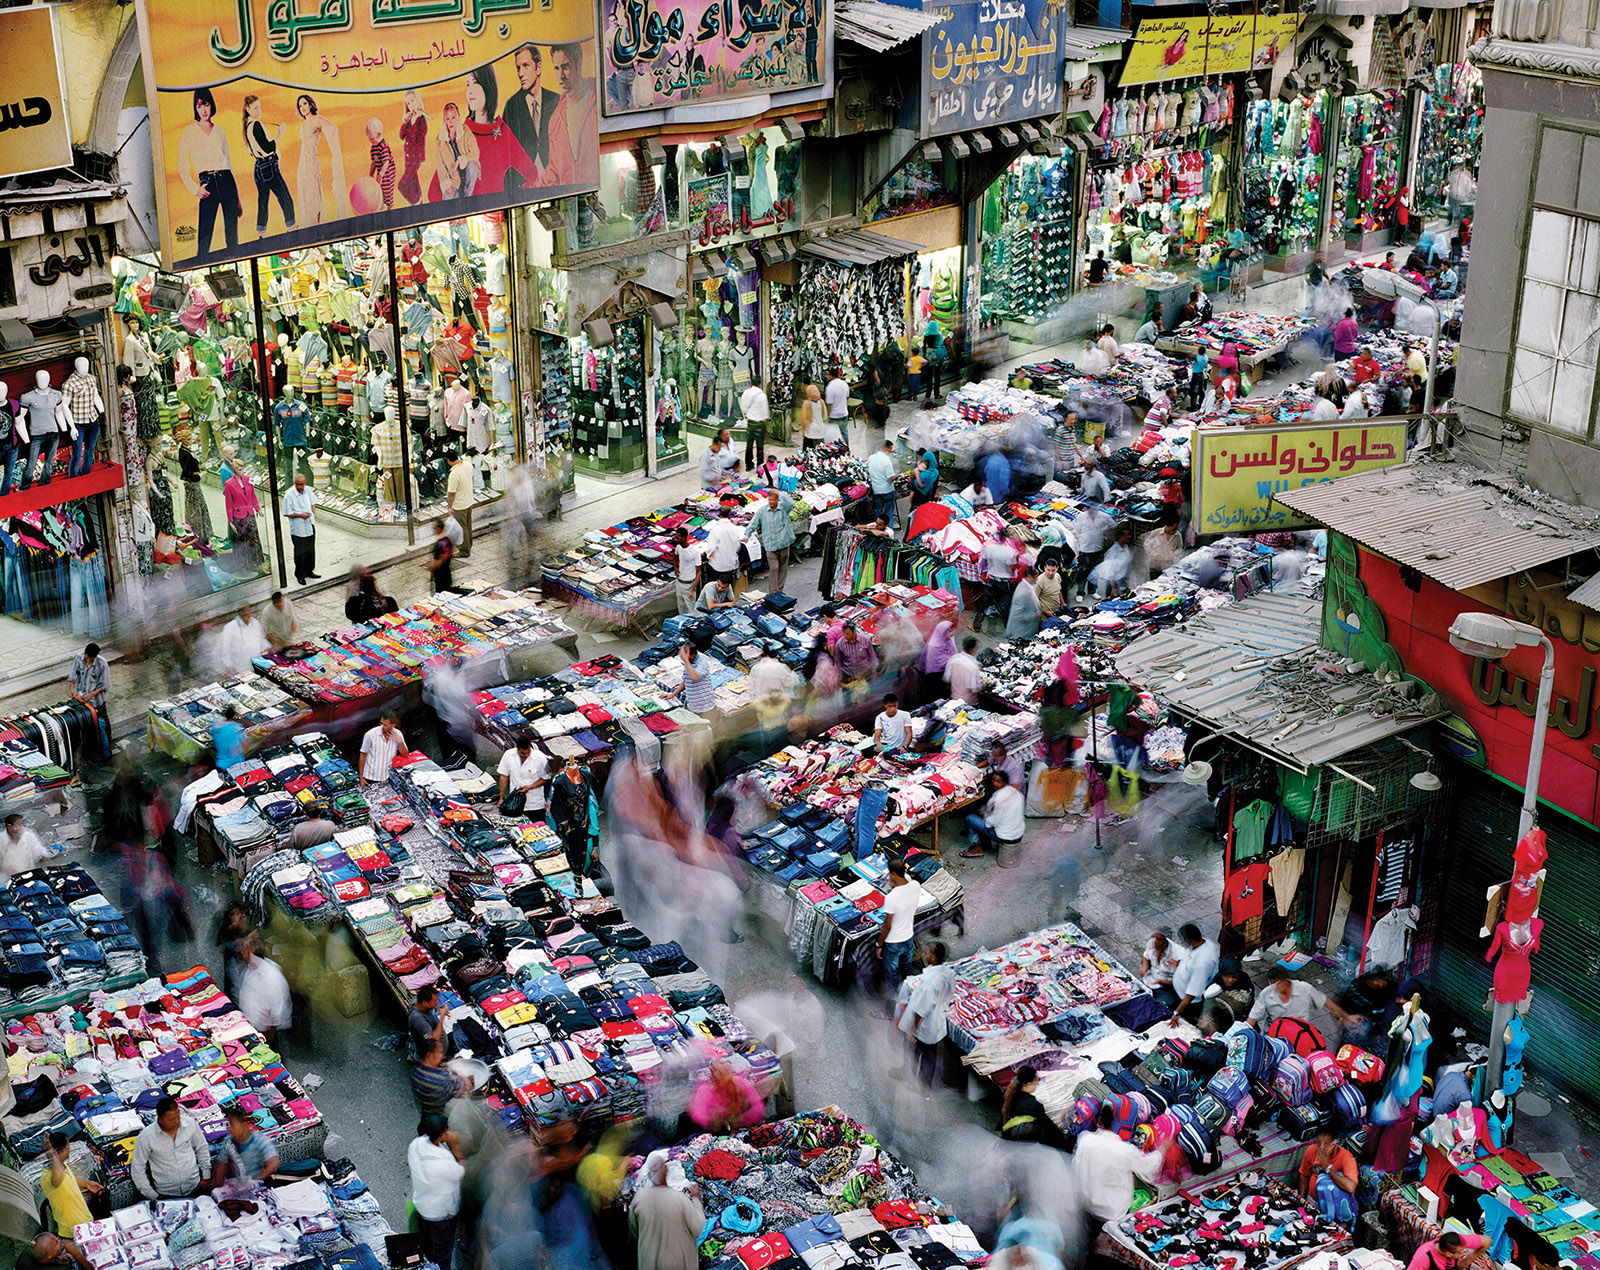 A clothing market in Cairo, 2011; photograph by Martin Roemers from his book Metropoli, published by Hatje Cantz in 2015